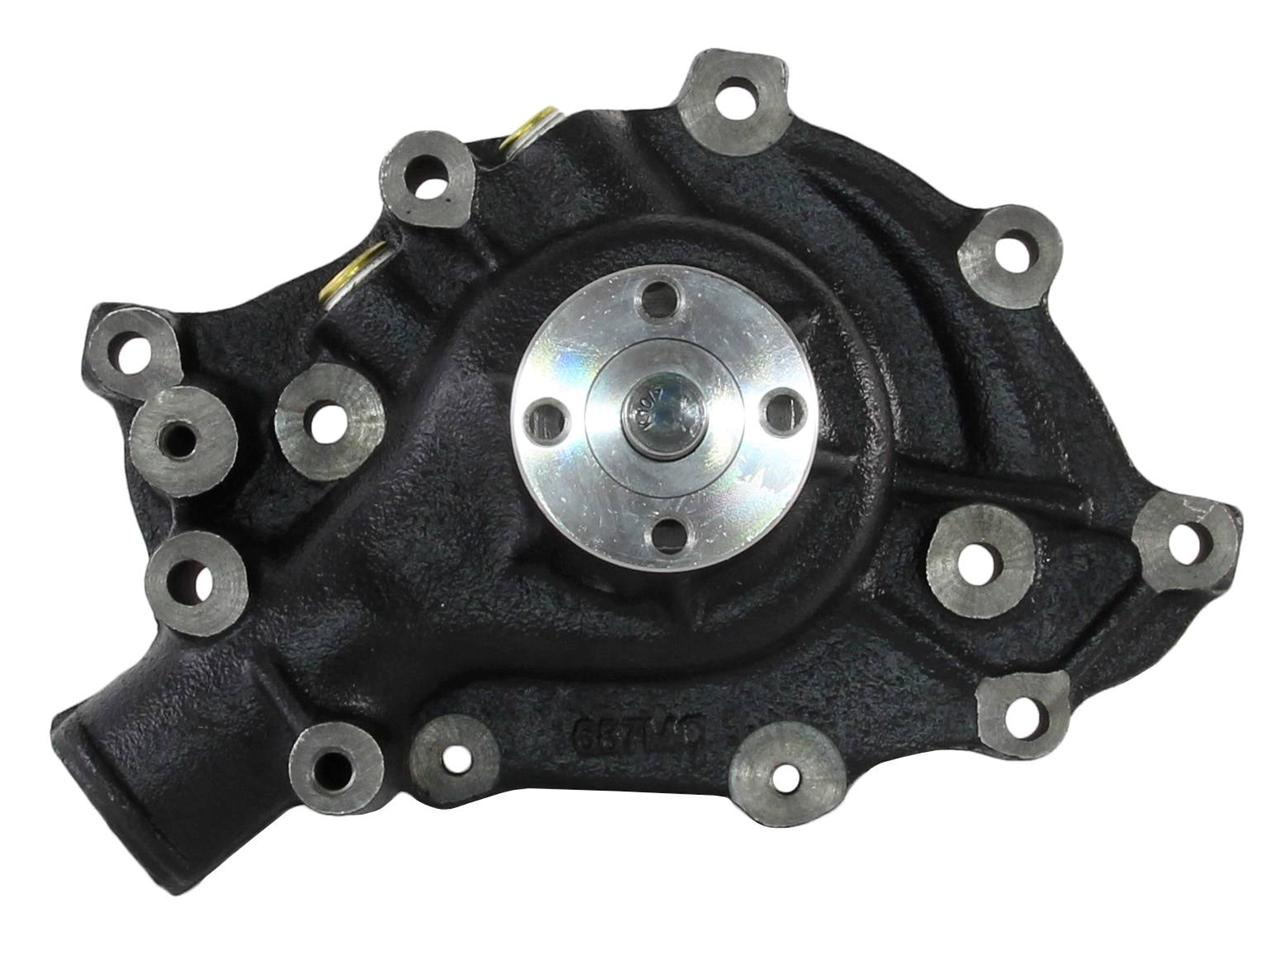 Parts & Accessories NEW MARINE WATER PUMP CHRYSLER SMALL BLOCK 273 ...